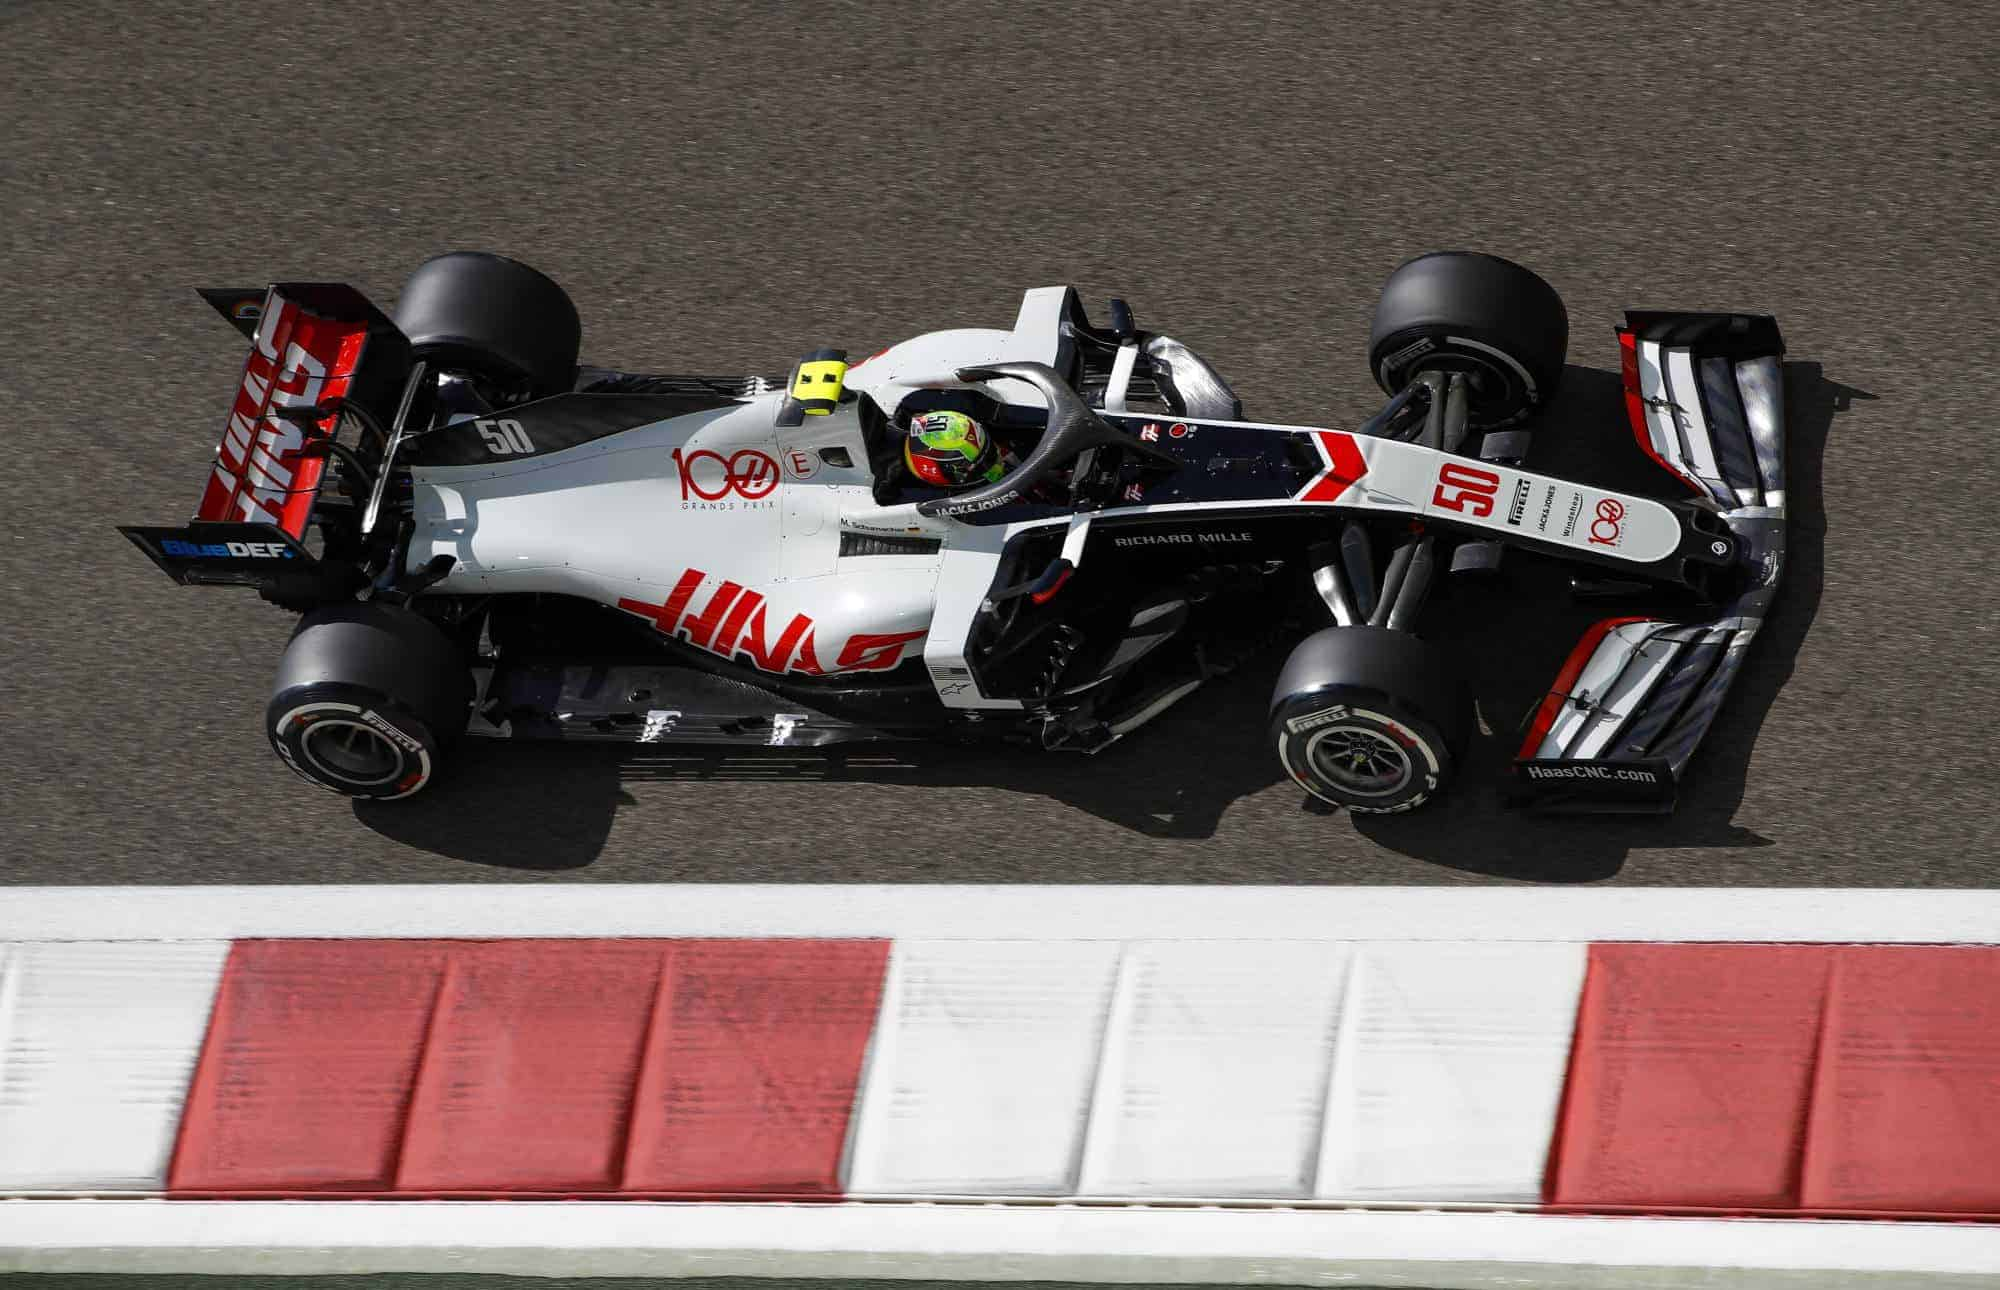 2020 Abu Dhabi GP Mick Schumacher Haas F1 team Friday on track hard Pirelli Photo Haas F1 Team